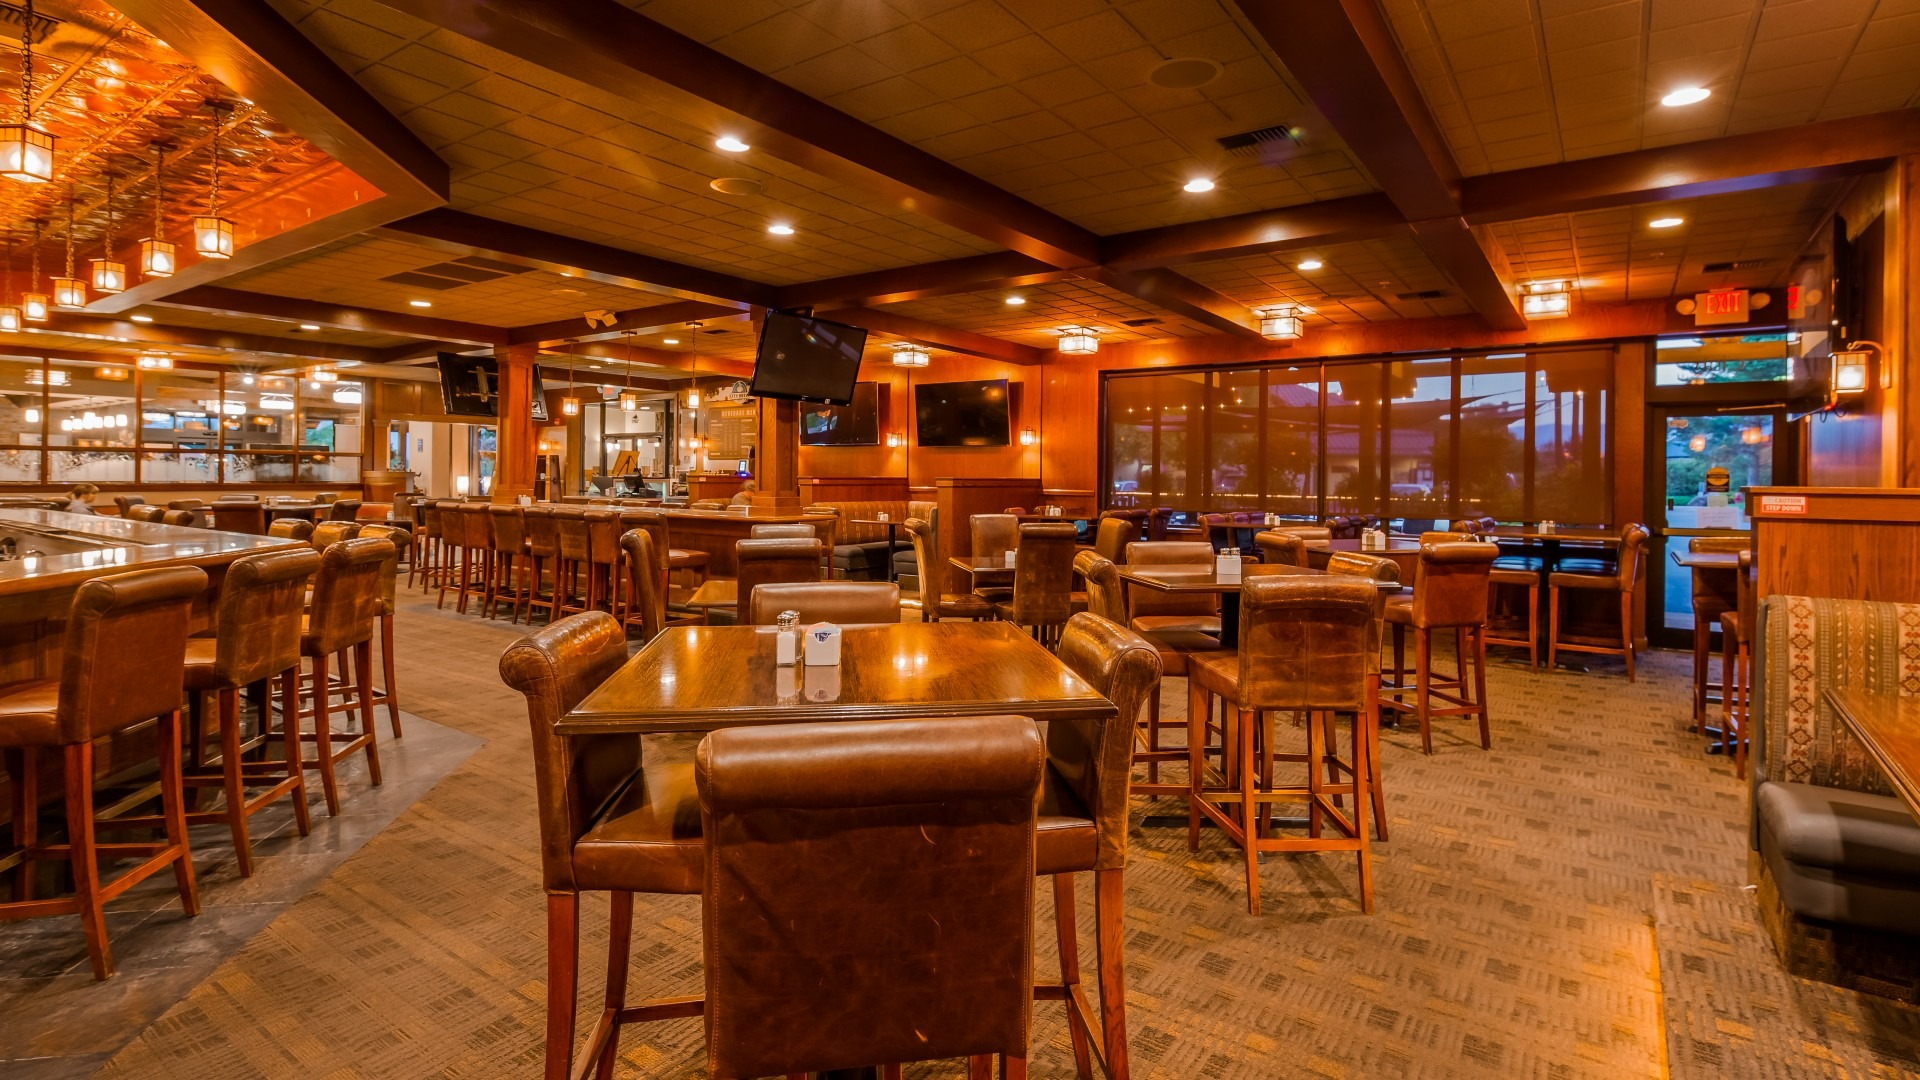 Inside The Club Tavern and Grill